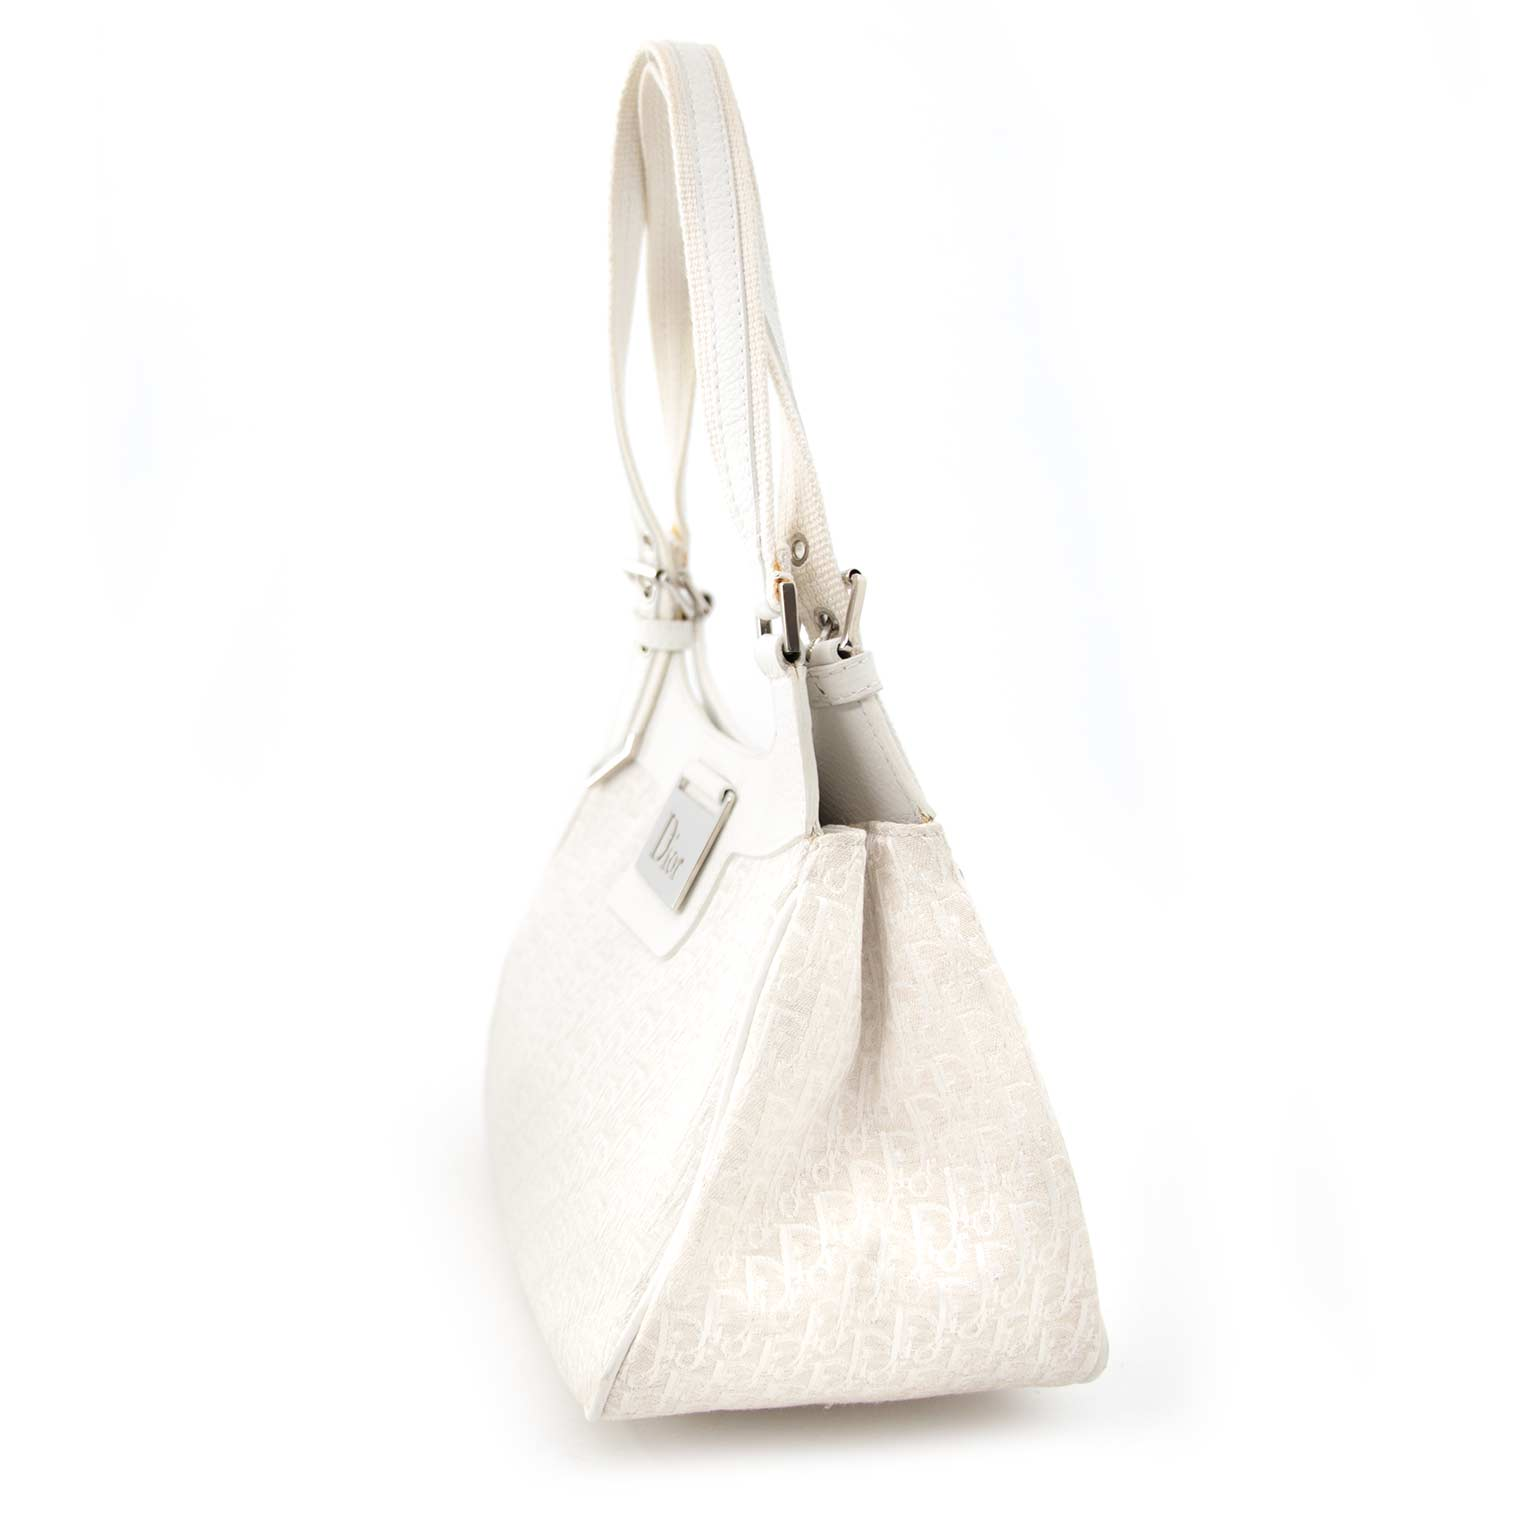 Secondhand designer items such as Dior White Monogram Shoulder Bag  for the best price available online at Labellov